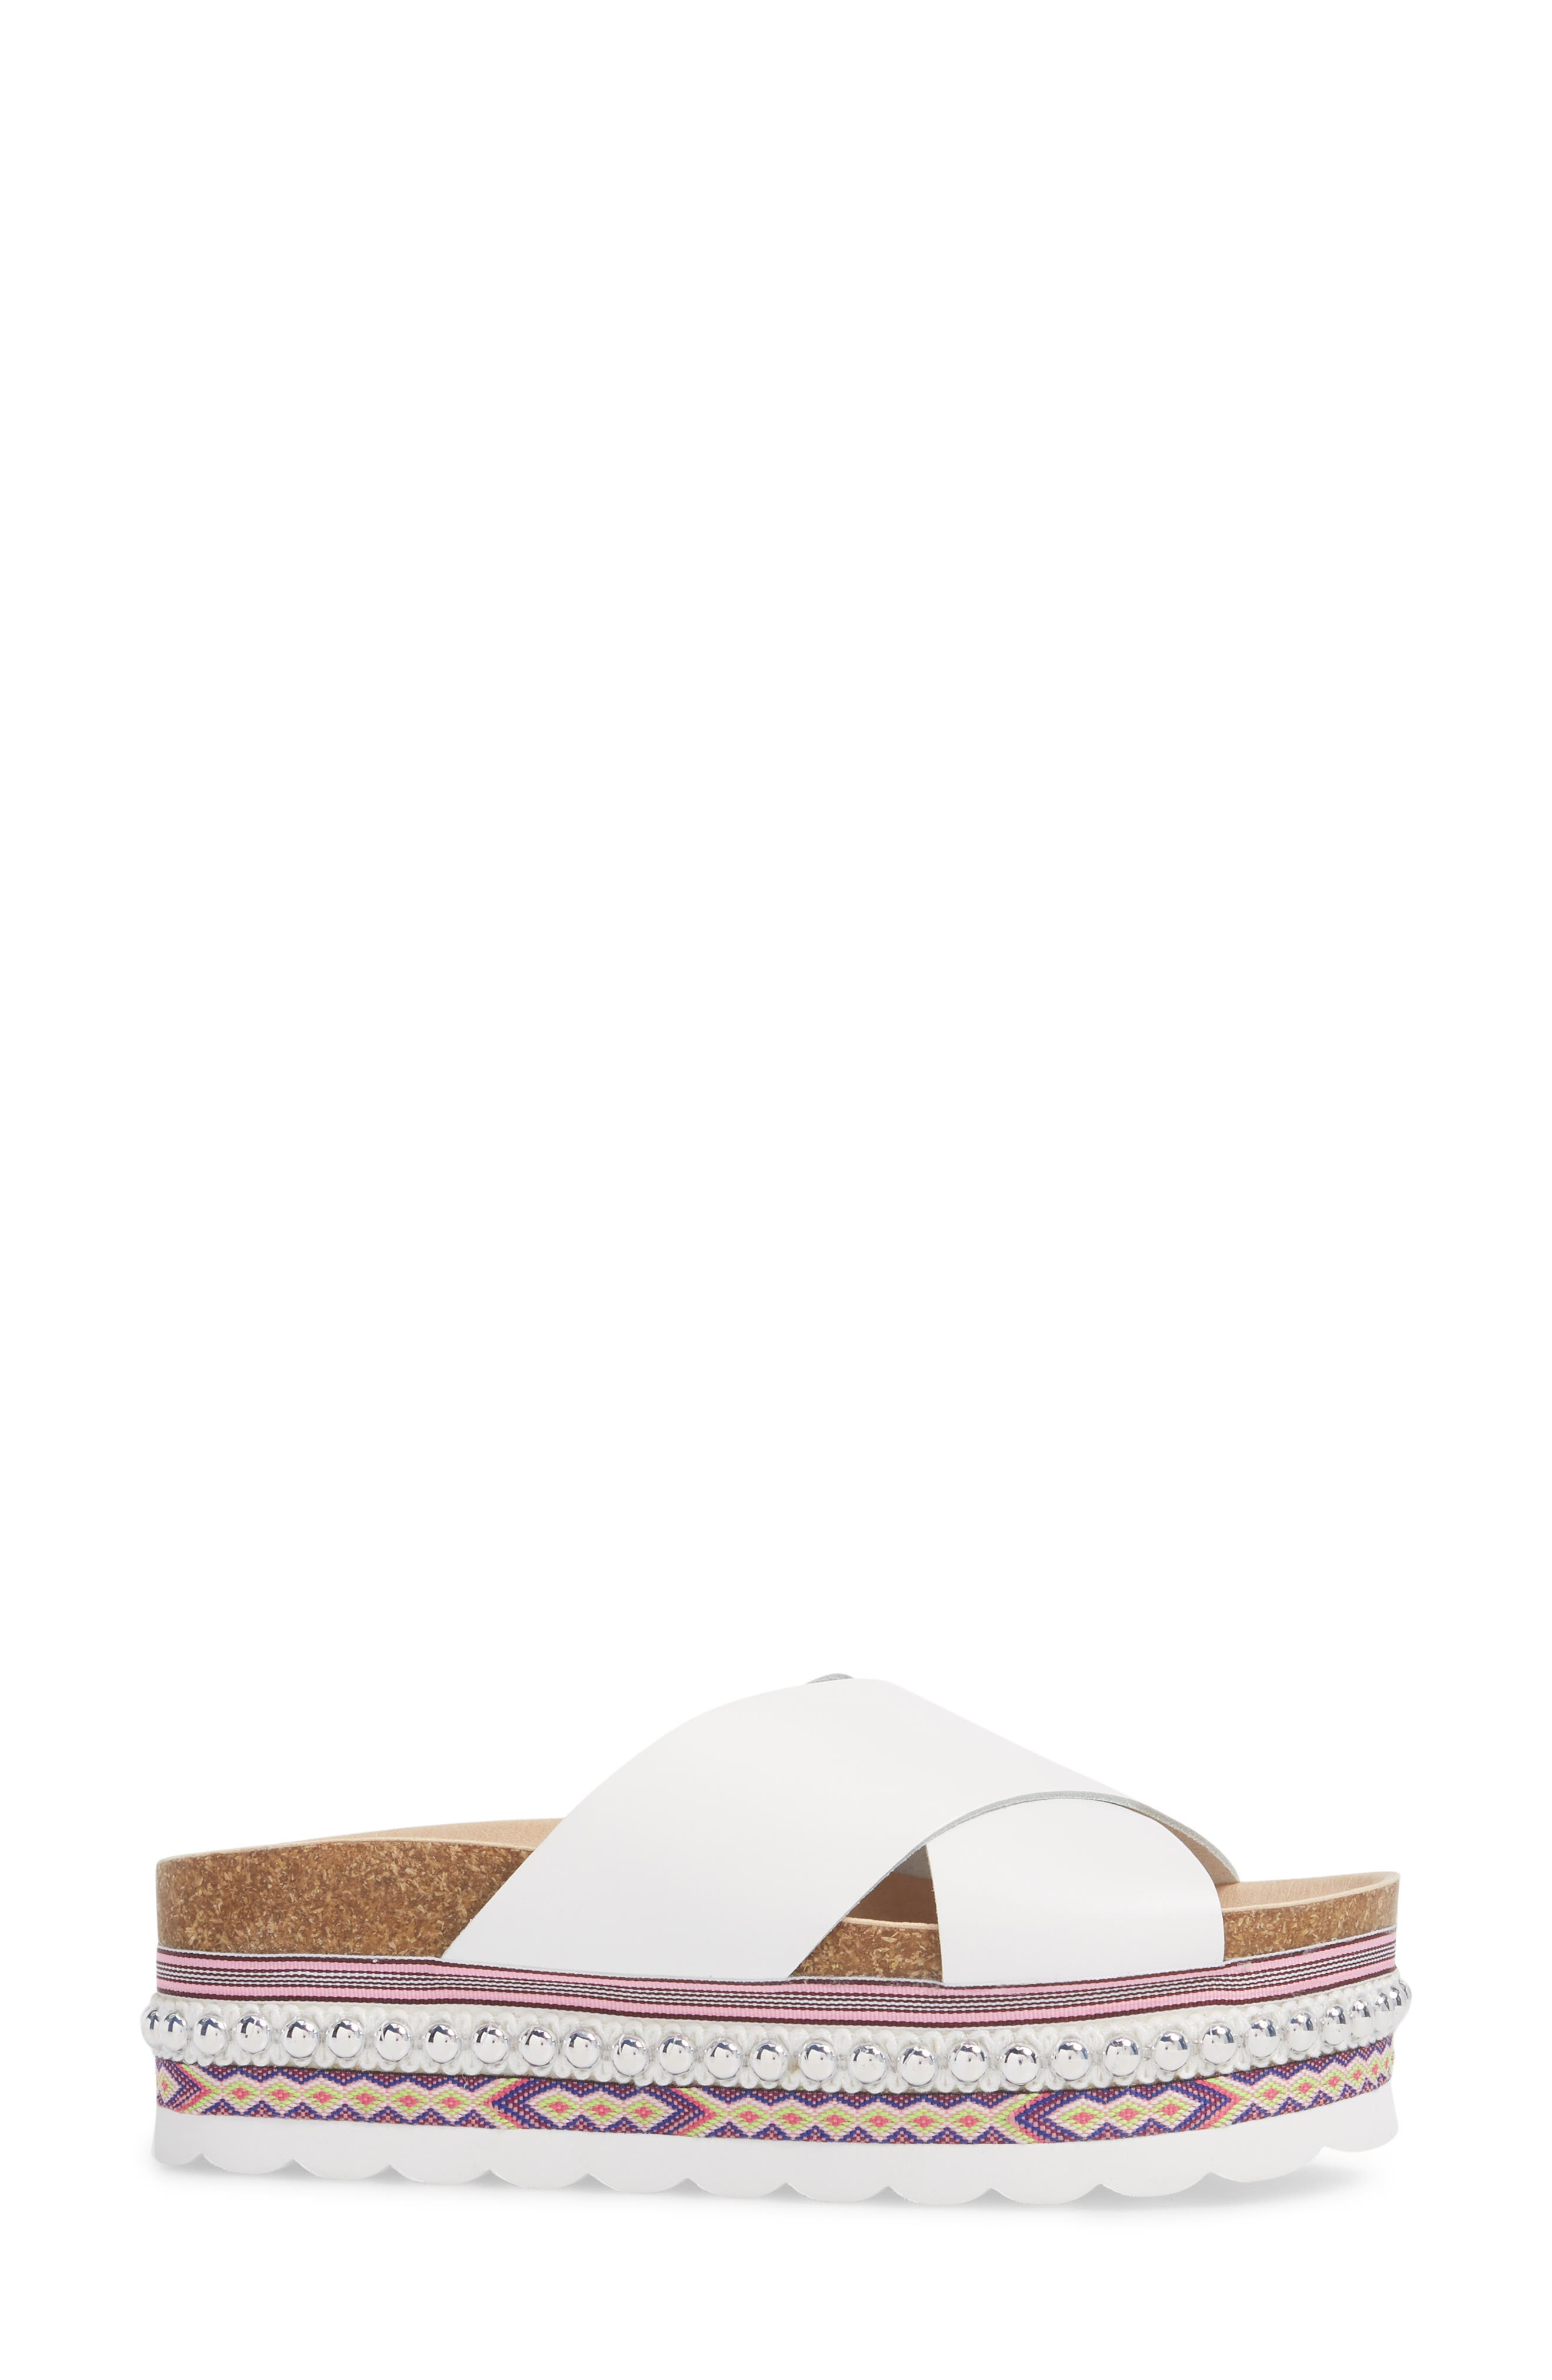 Torri Platform Slide Sandal,                             Alternate thumbnail 3, color,                             WHITE LEATHER